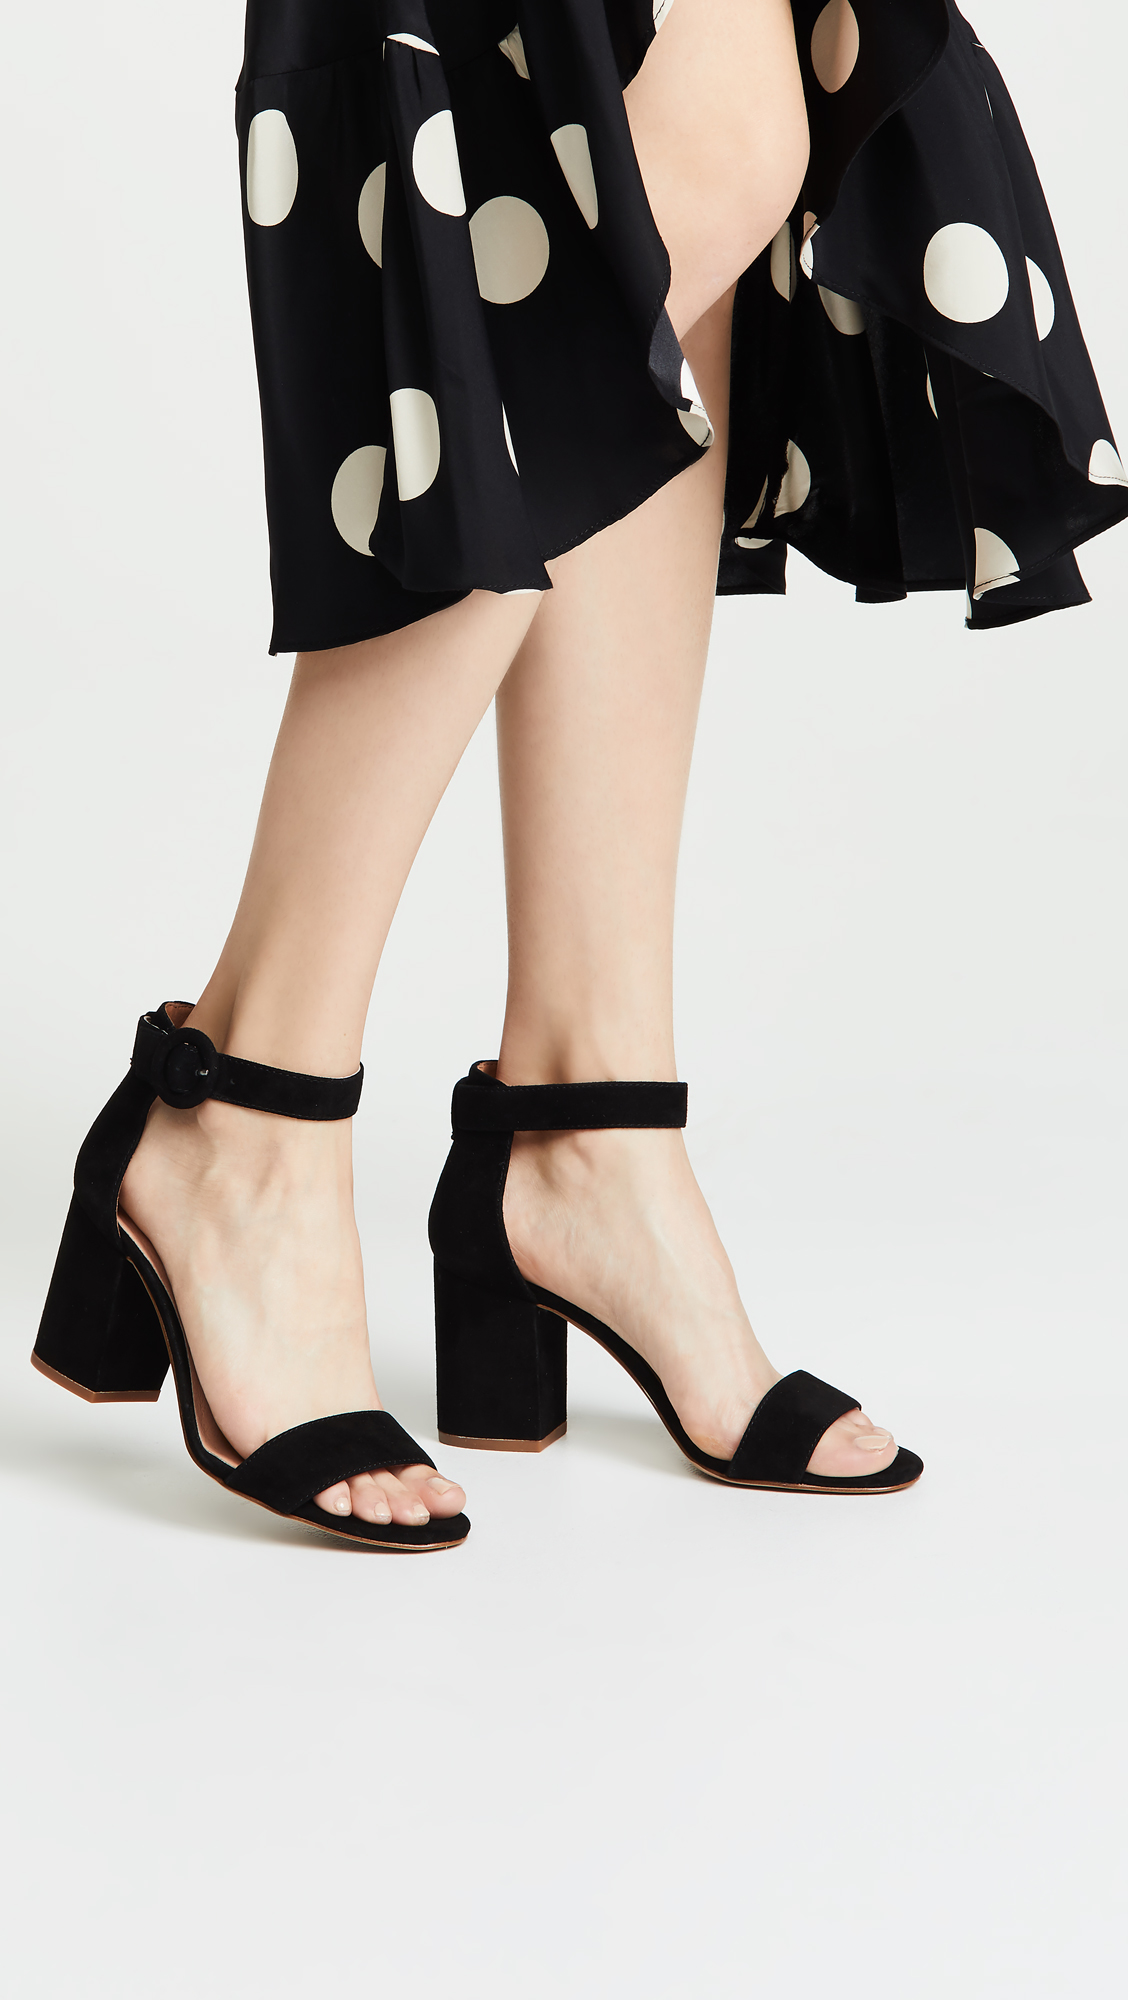 59c3a868a8a Madewell The Regina Ankle-Strap Sandals